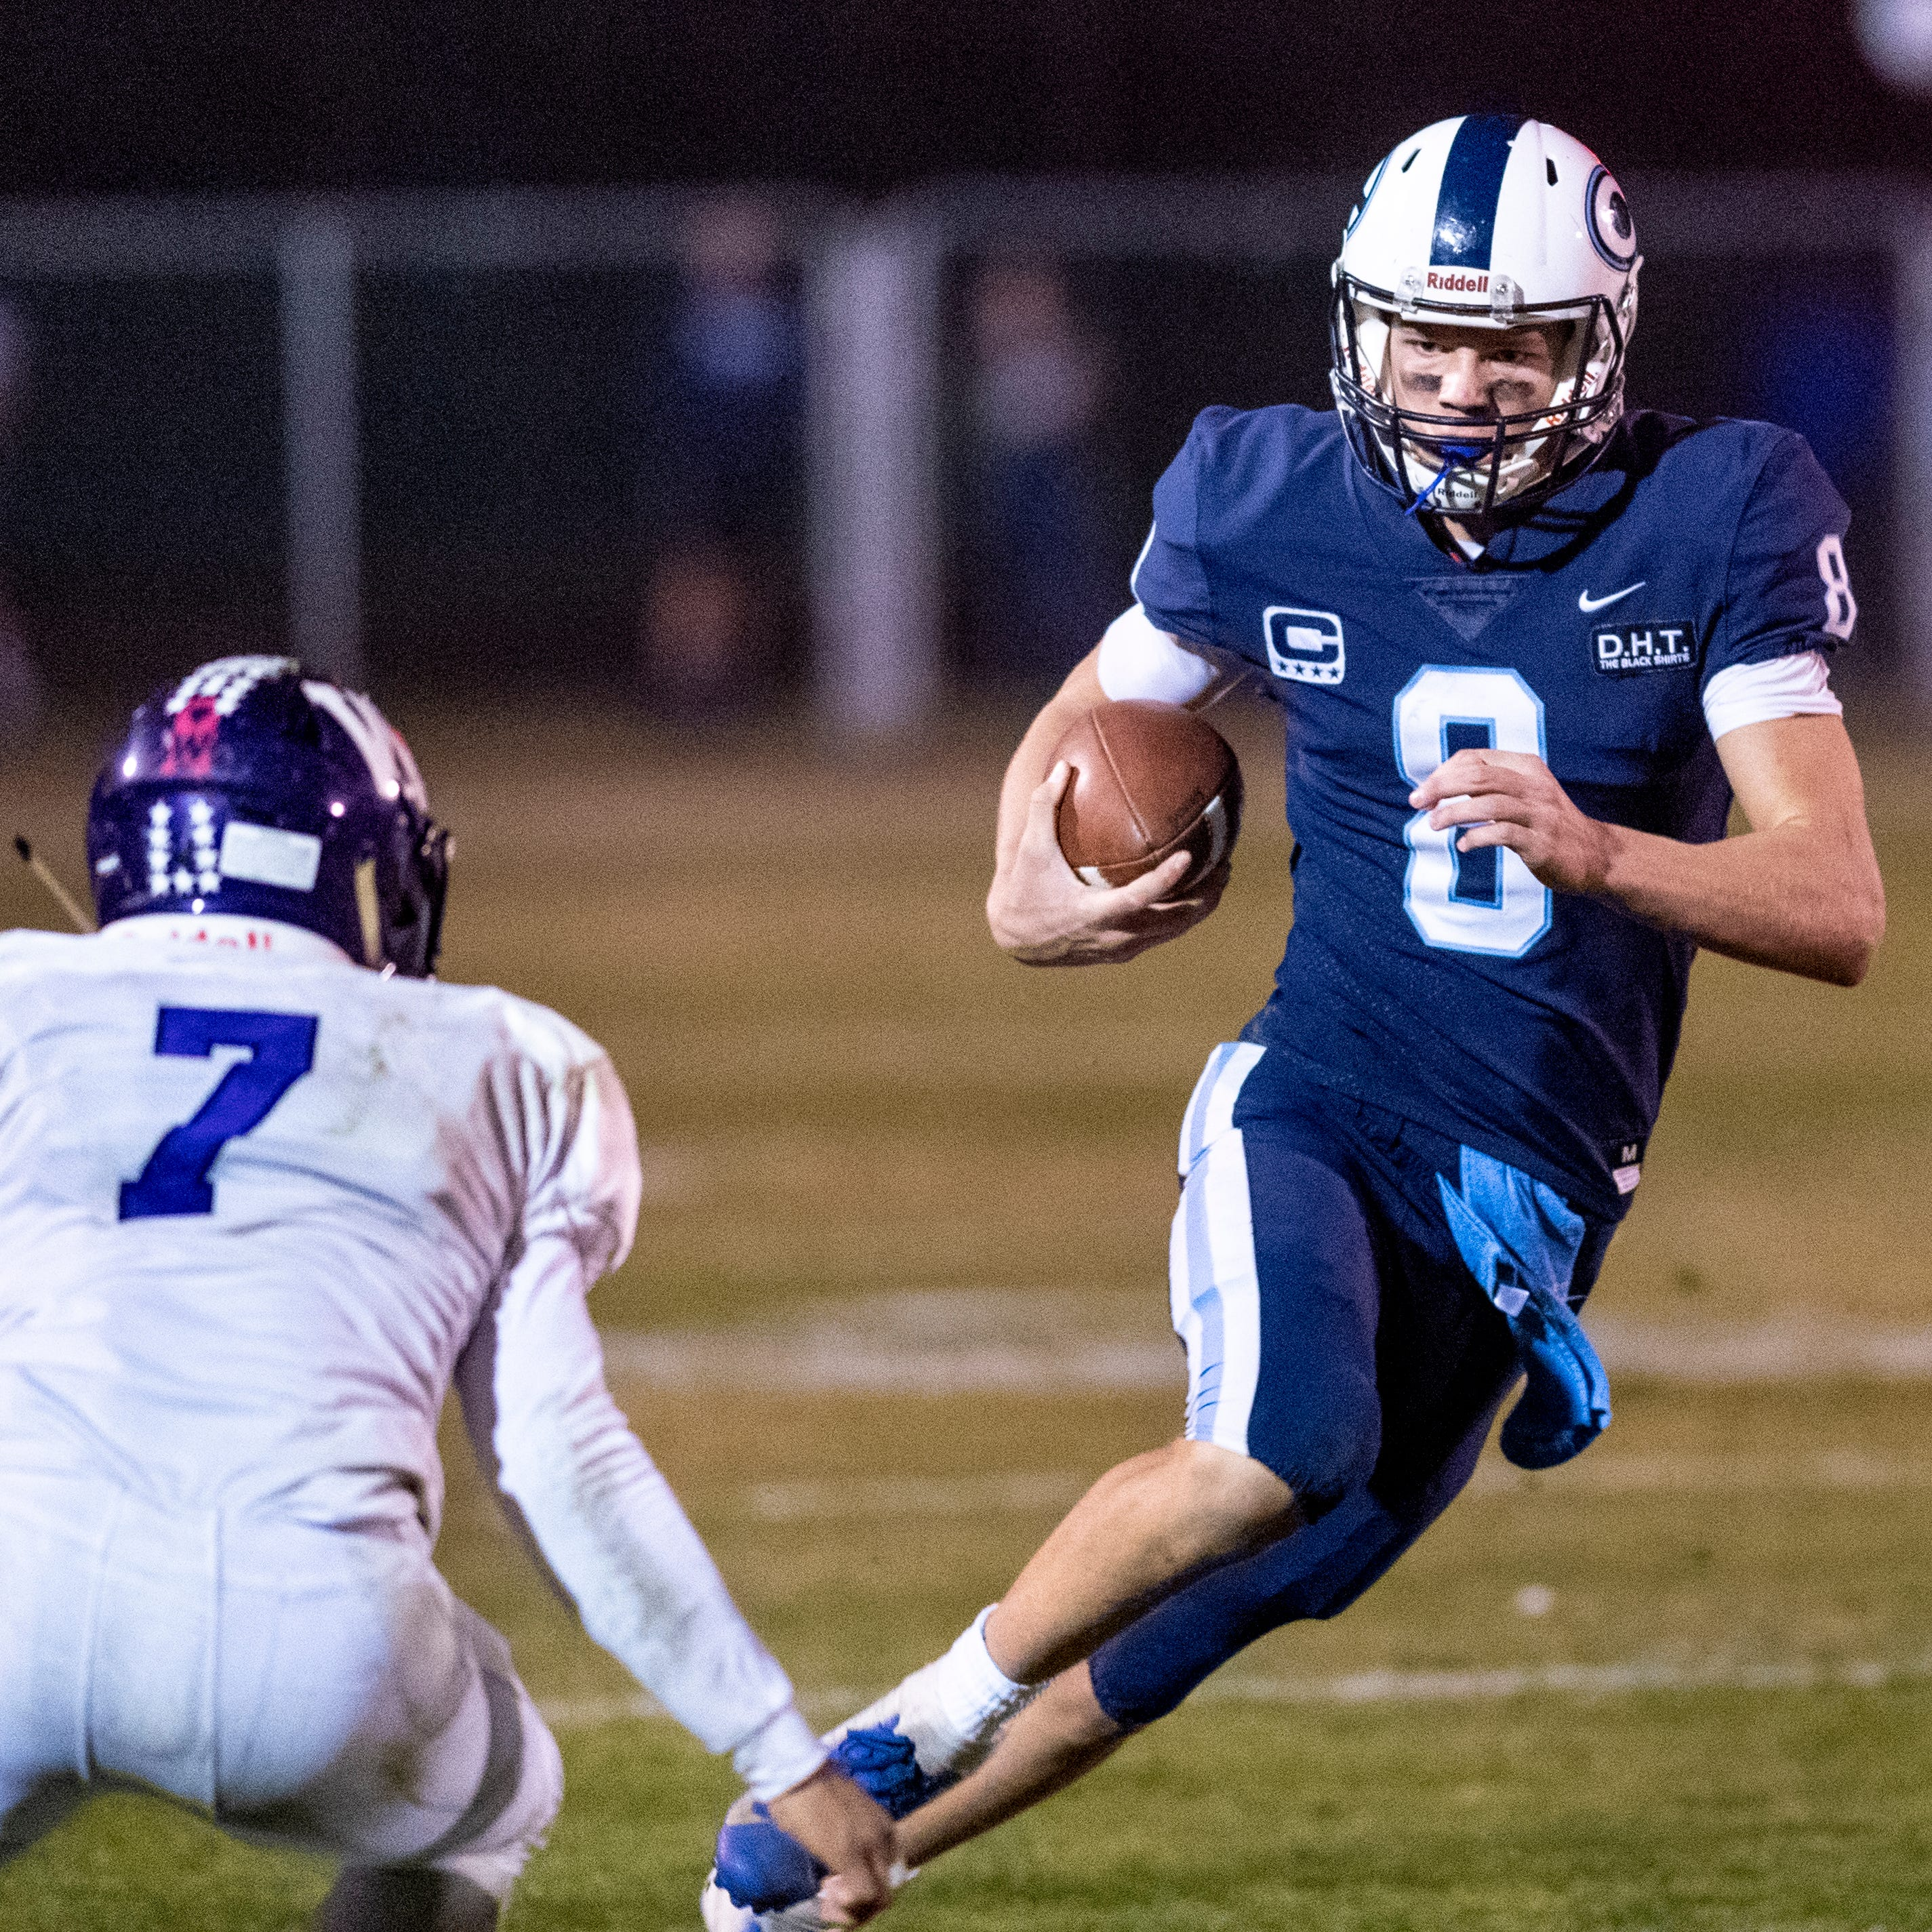 Find out how CVC faired against Washington Union in playoff action